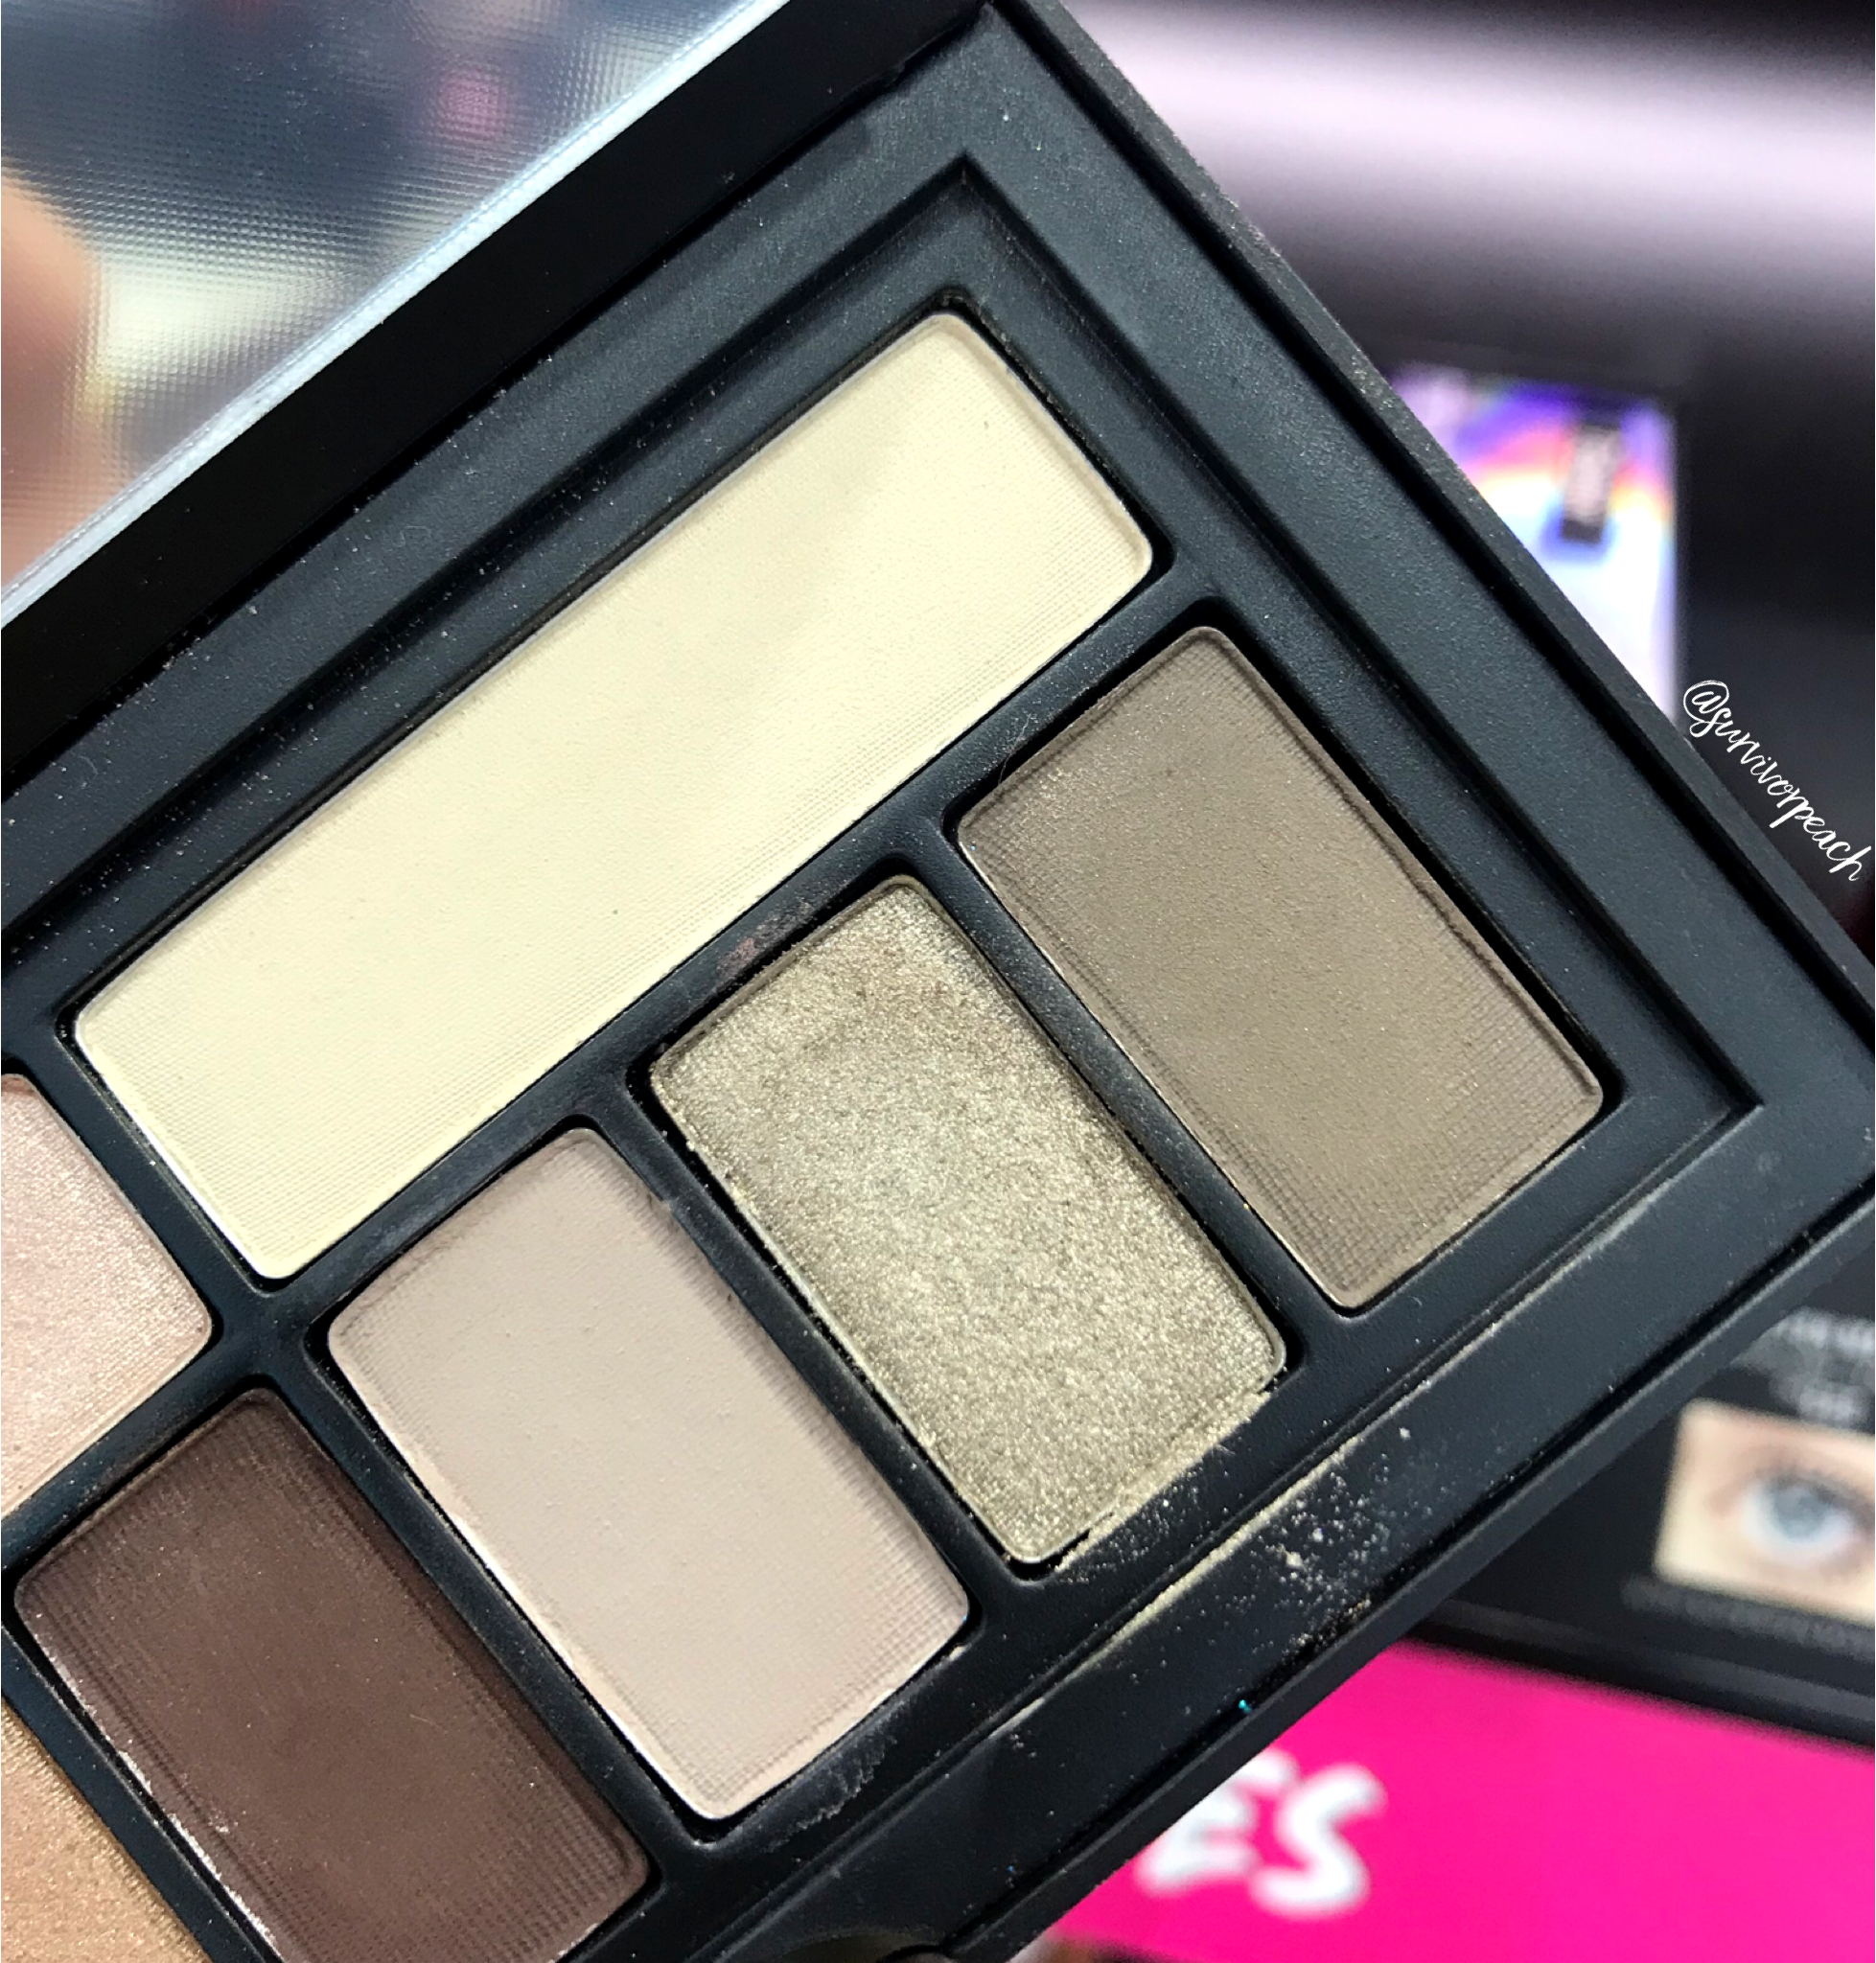 Smashbox Covershot Eyeshadow palette - The Minimalist